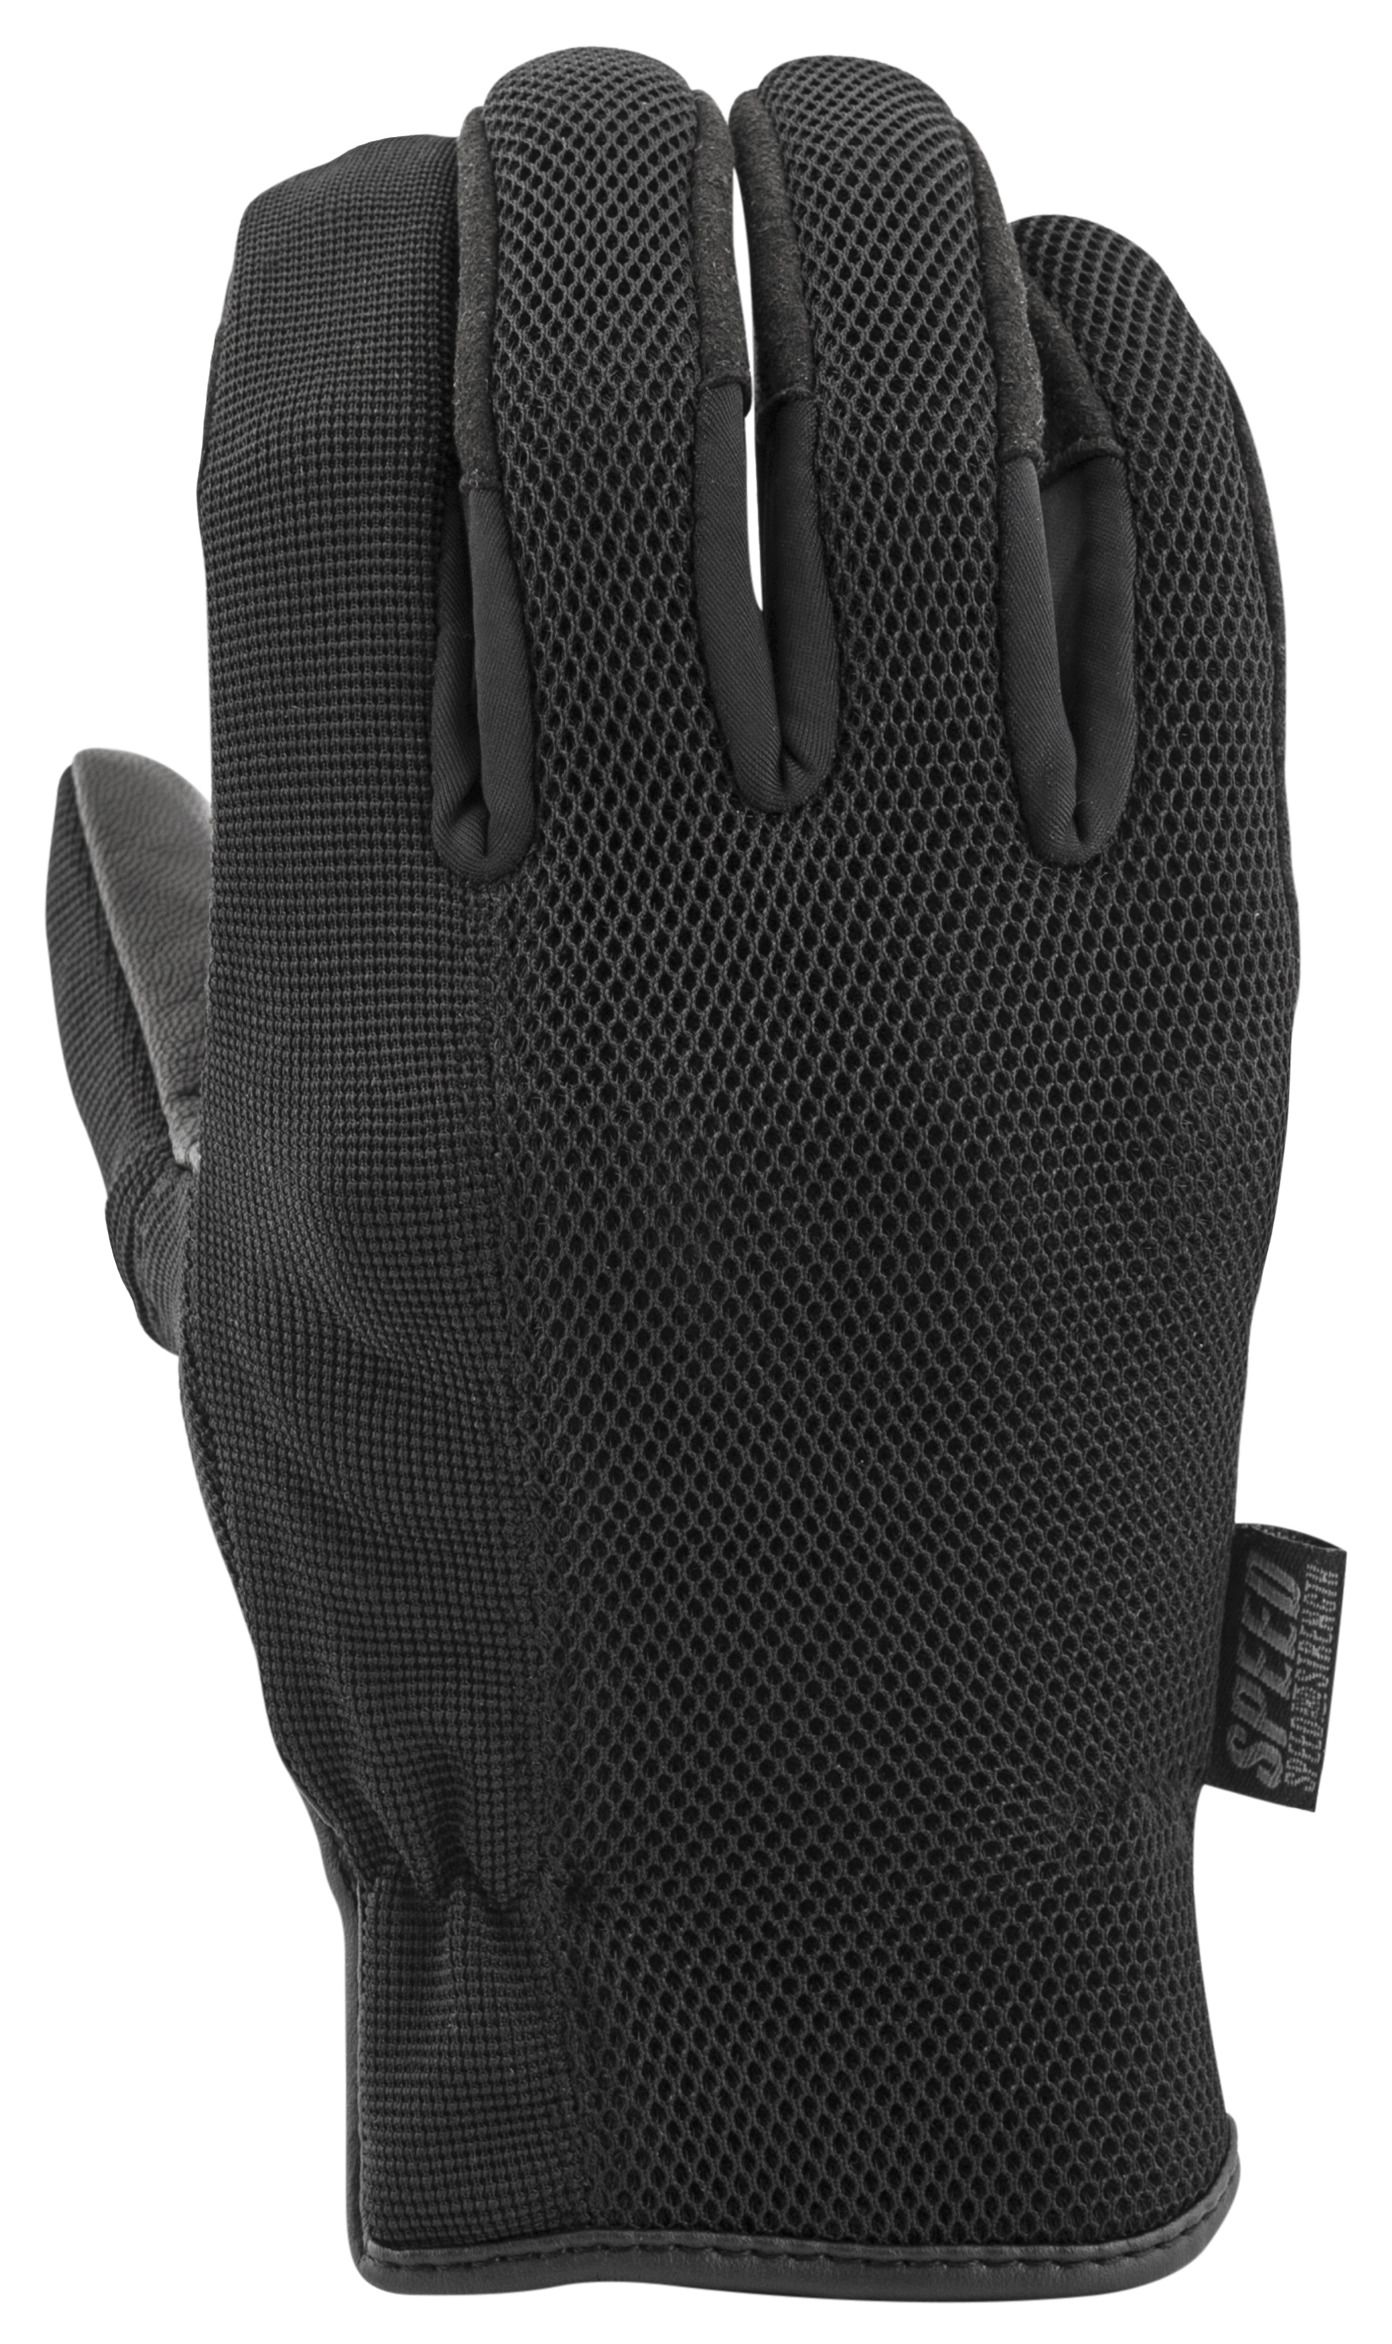 Motorcycle gloves mesh - Motorcycle Gloves Mesh 48